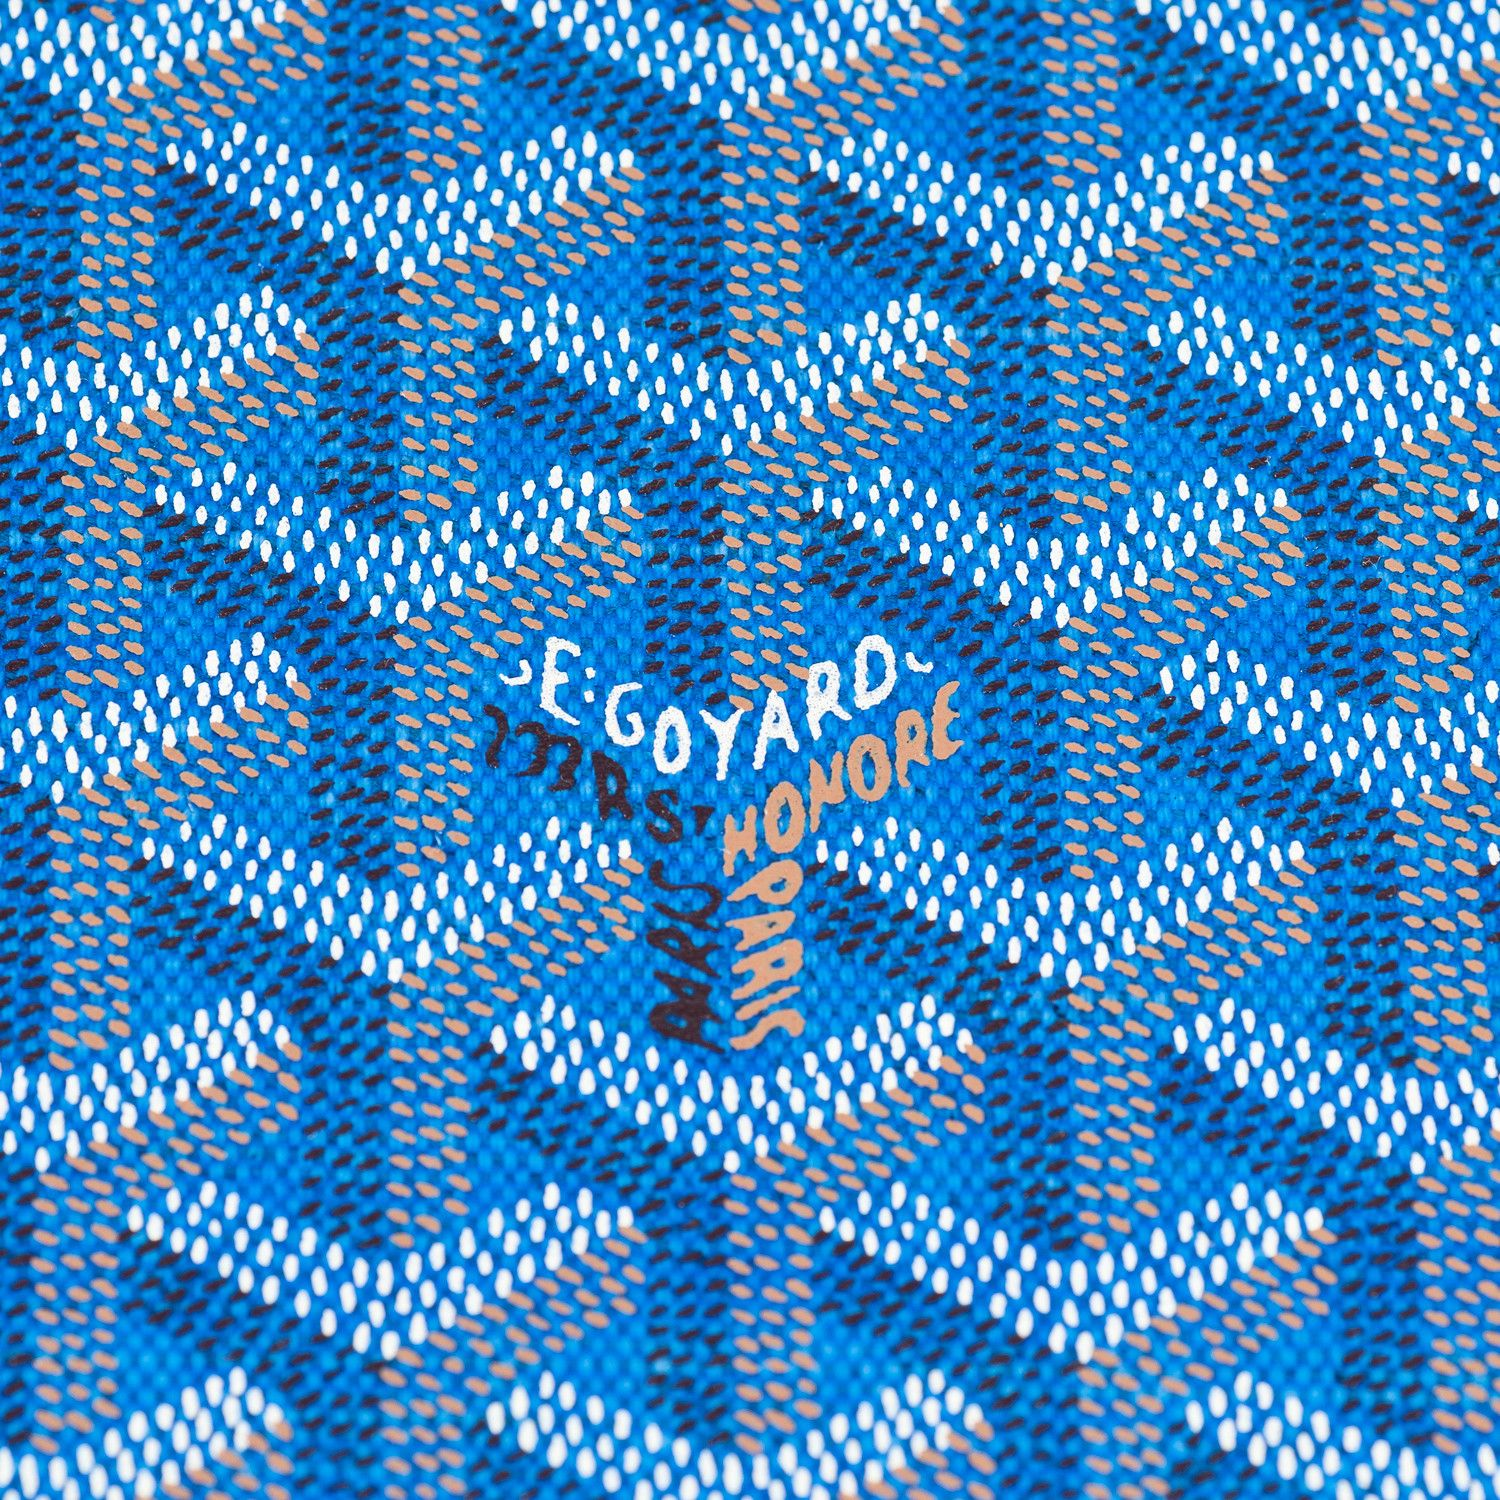 1500x1500 Goyard wallpaper Gallery